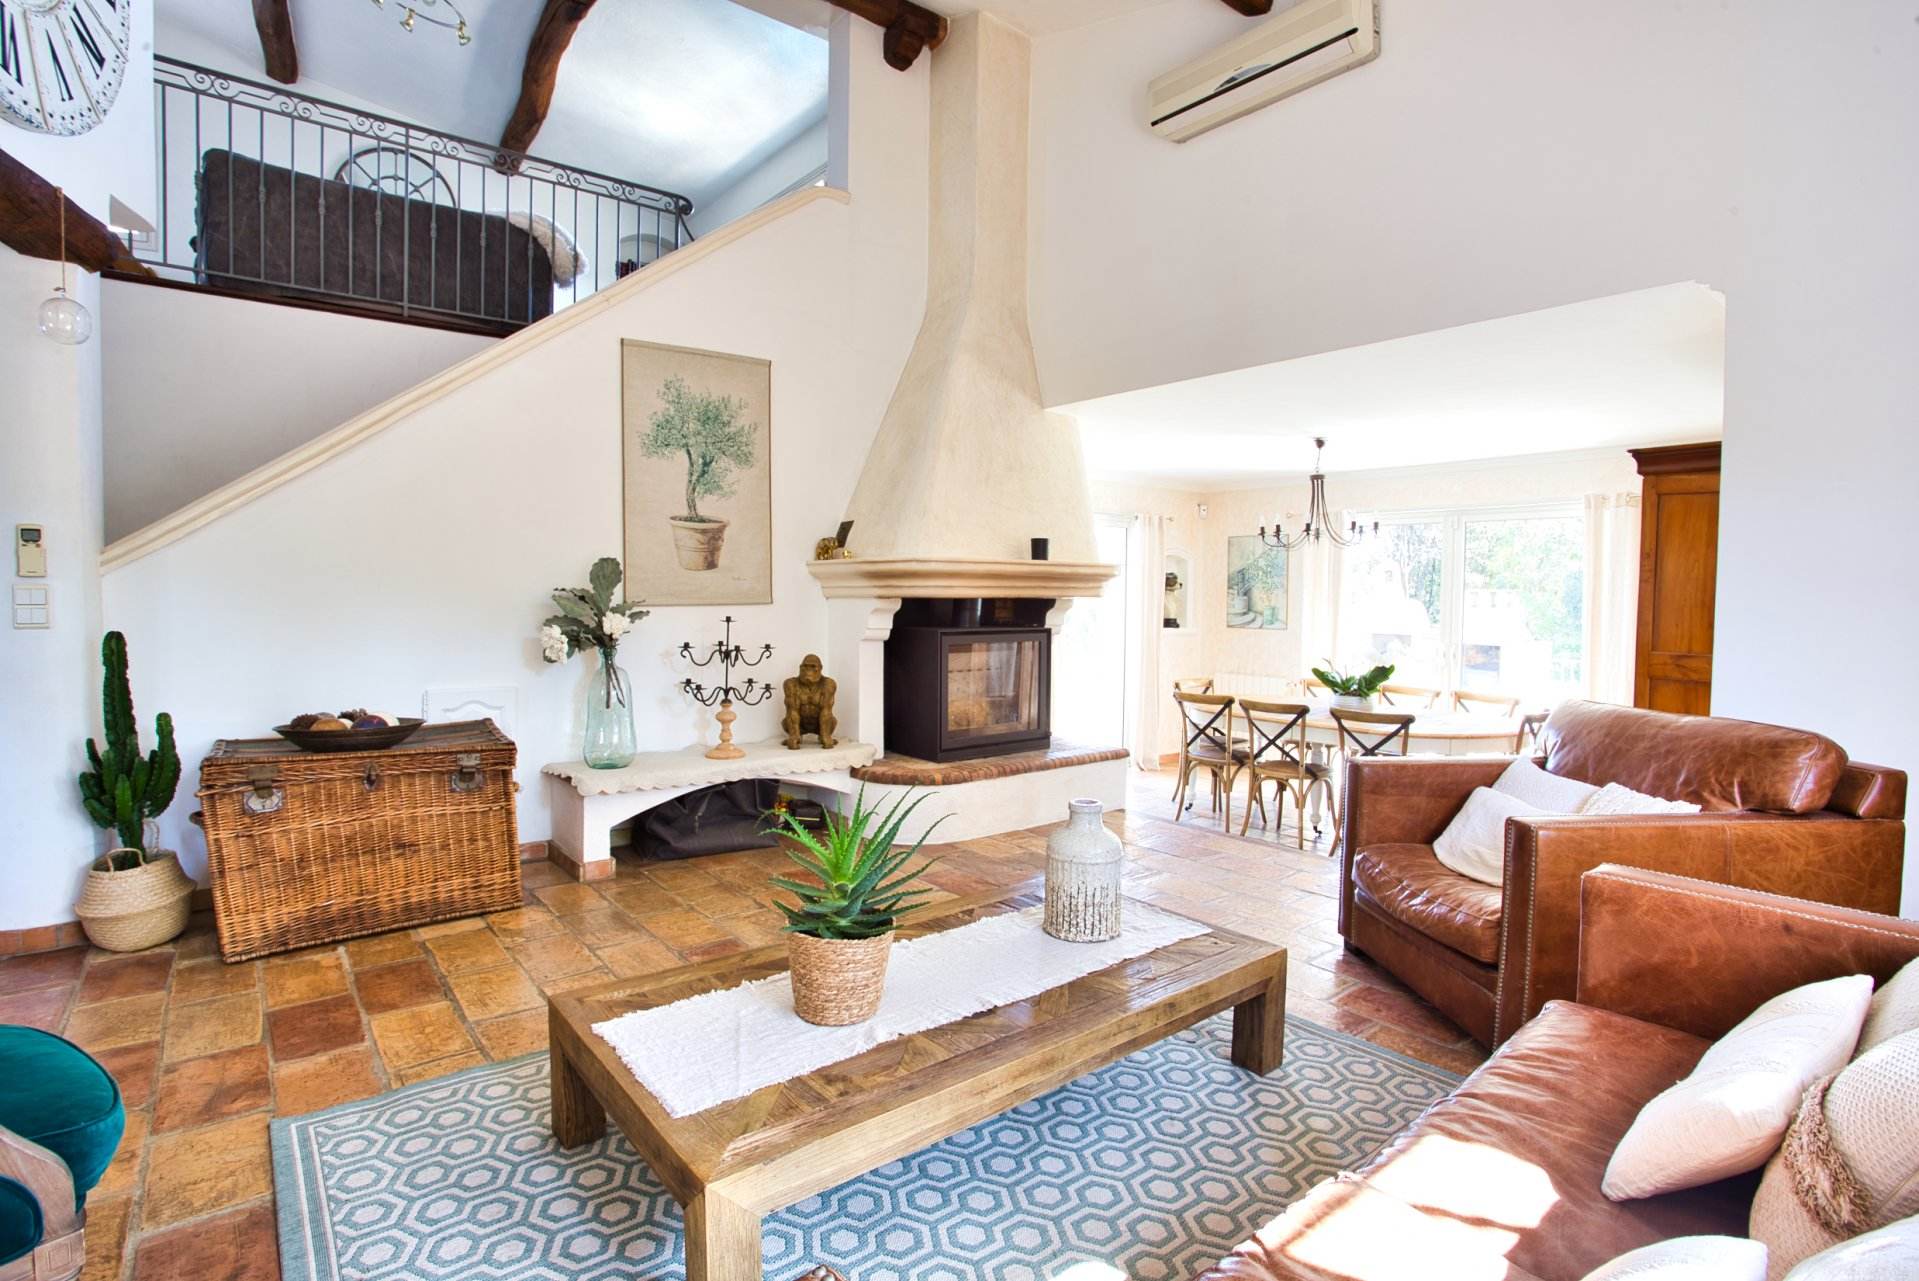 On the French Riviera, a magnificent, fully renovated family town house with swimming pool.